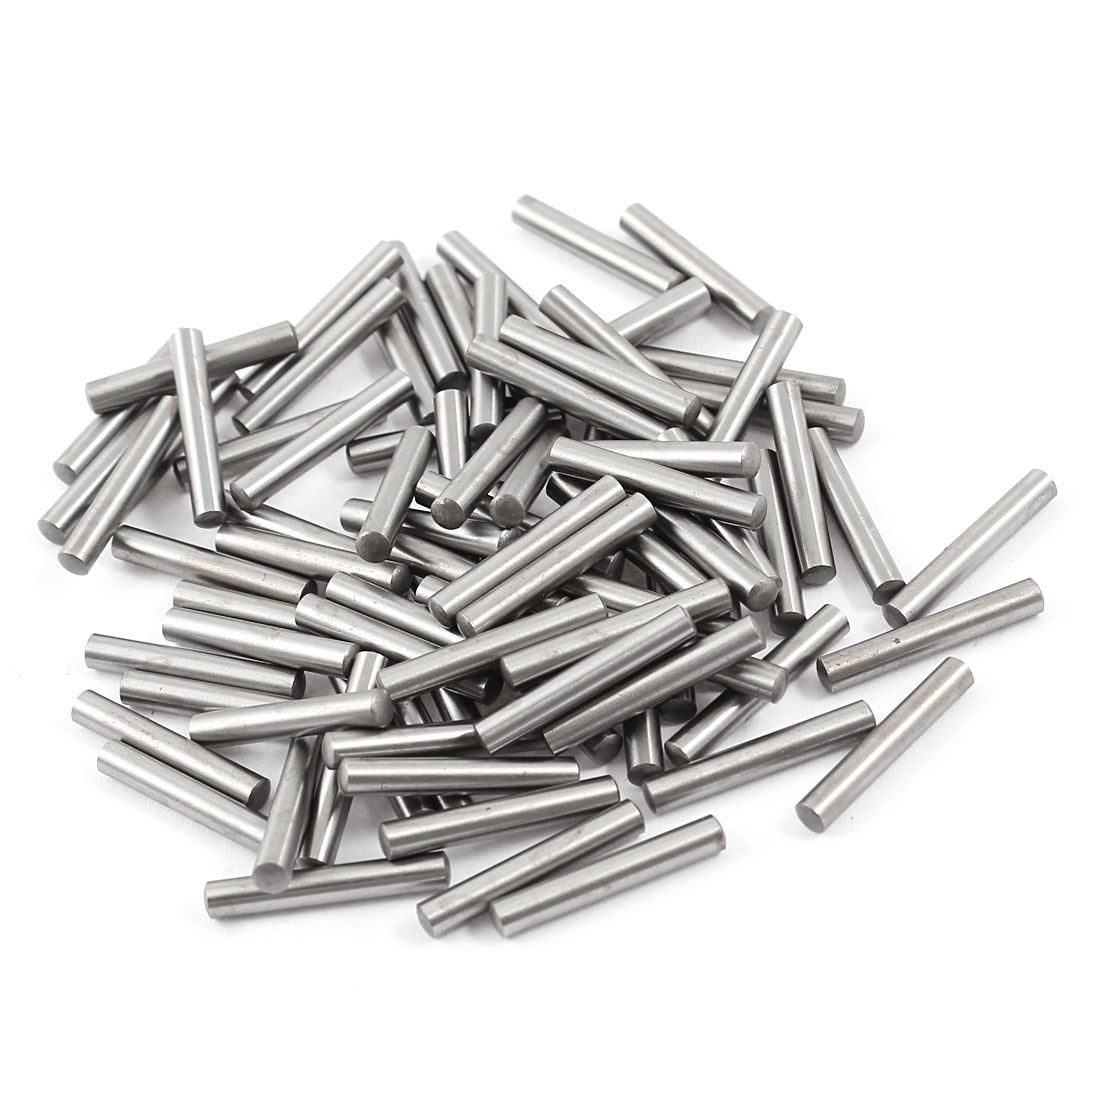 100 Pcs Stainless Steel 3.1mm x 19.8mm Parallel Dowel Pins Fasten Elements Silver Tone